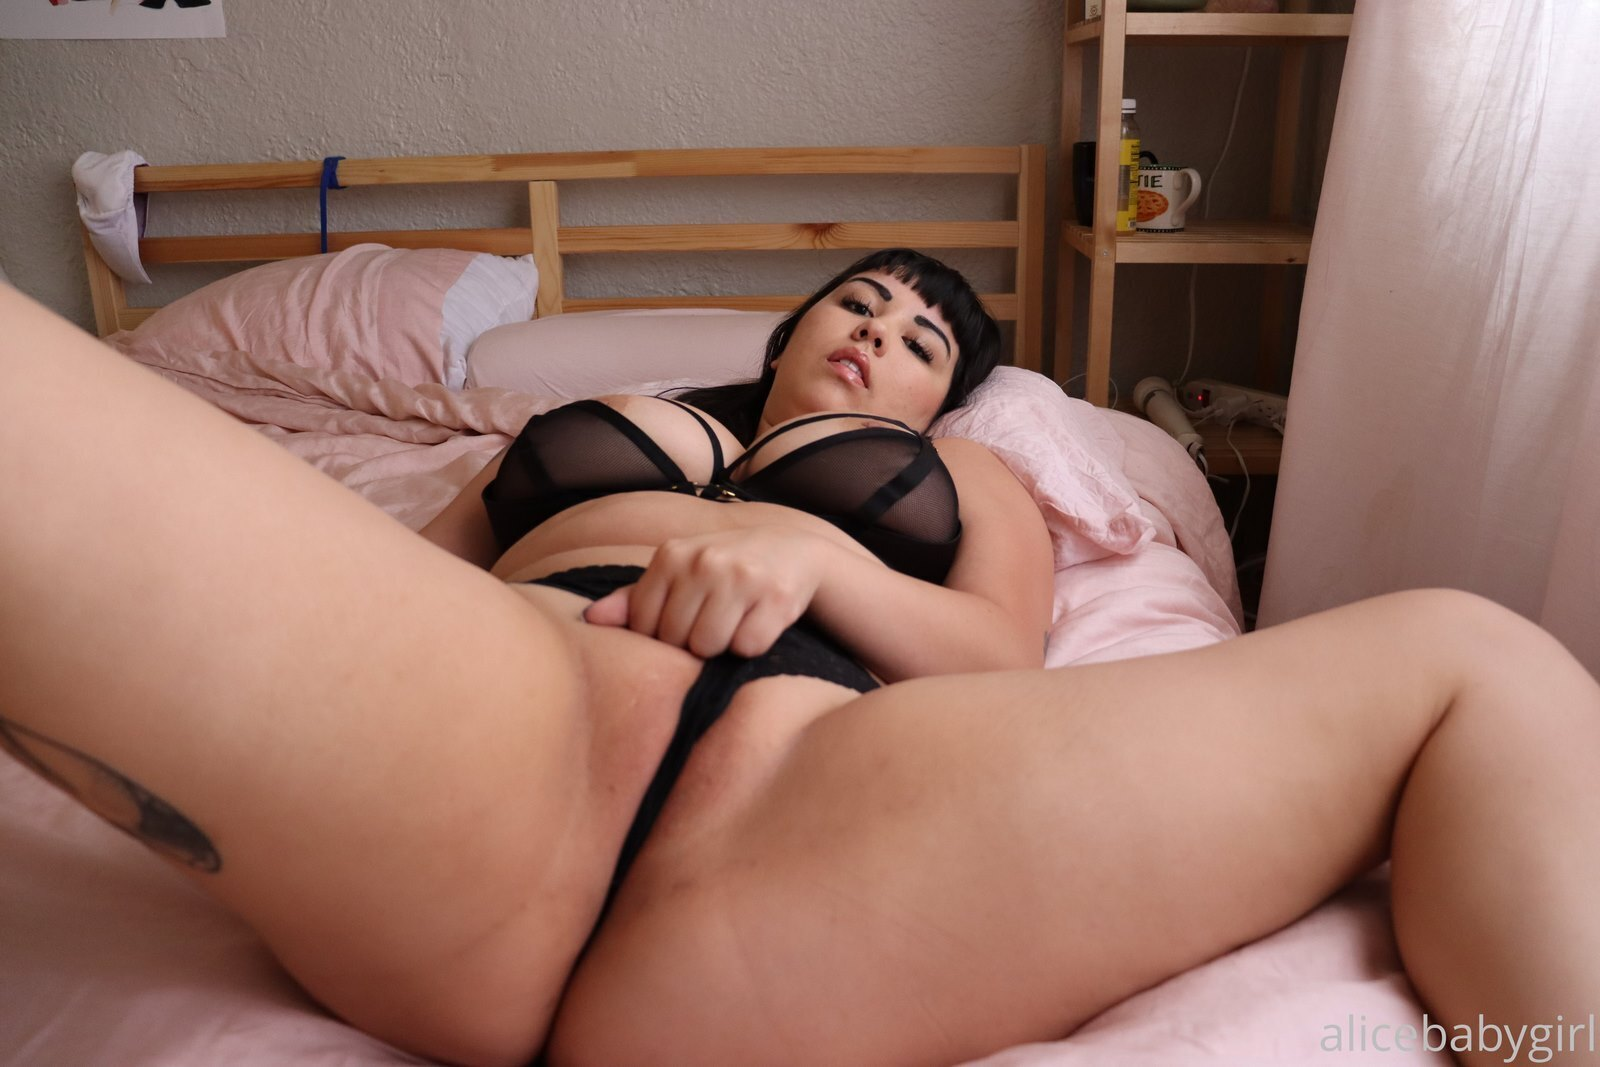 Alice Baby Girl, chica bisexual onlyfans